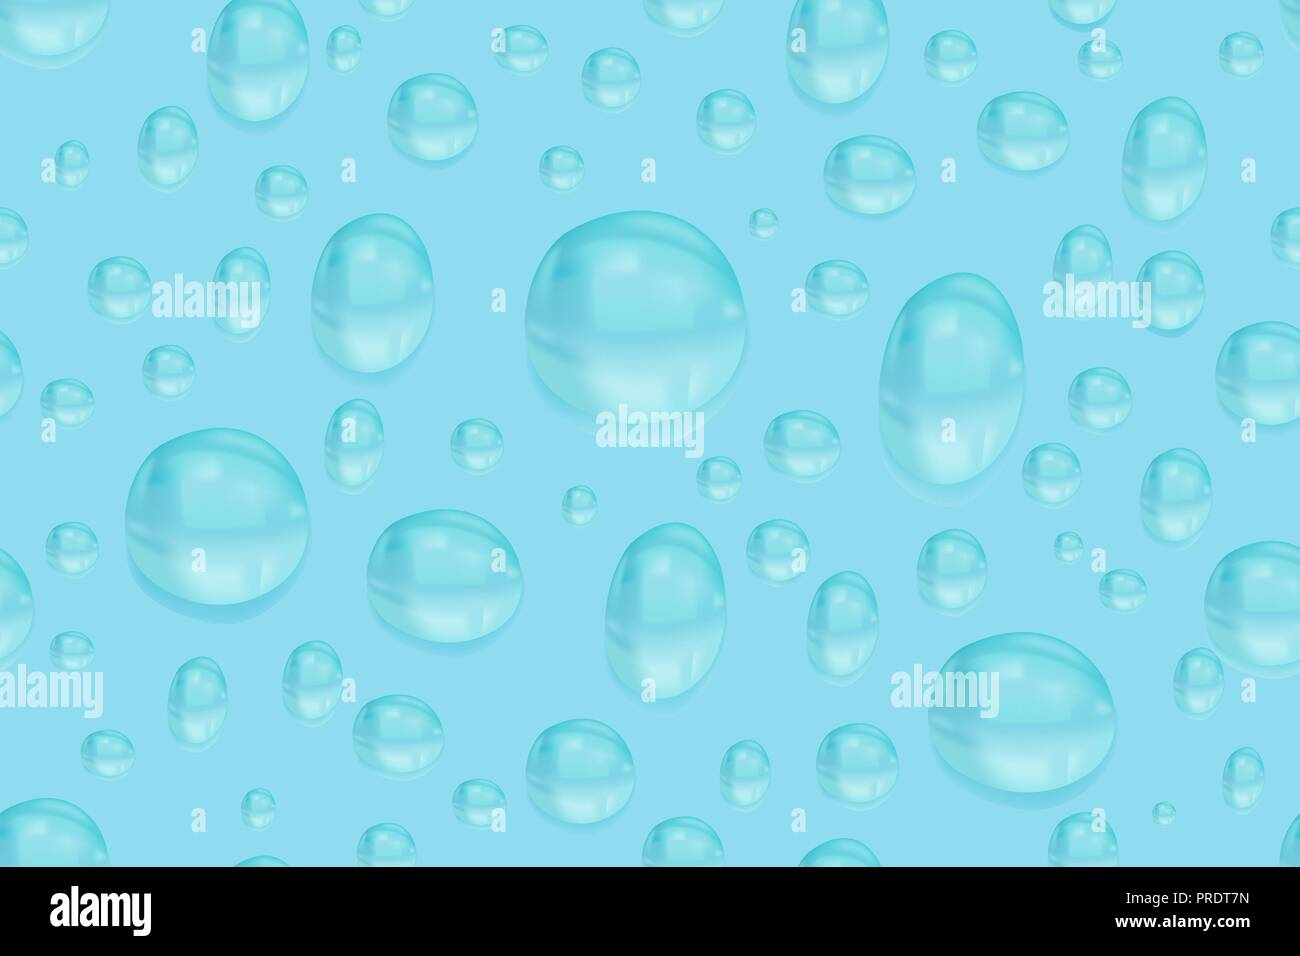 Water background with rain drops. Seamless pattern - Stock Image